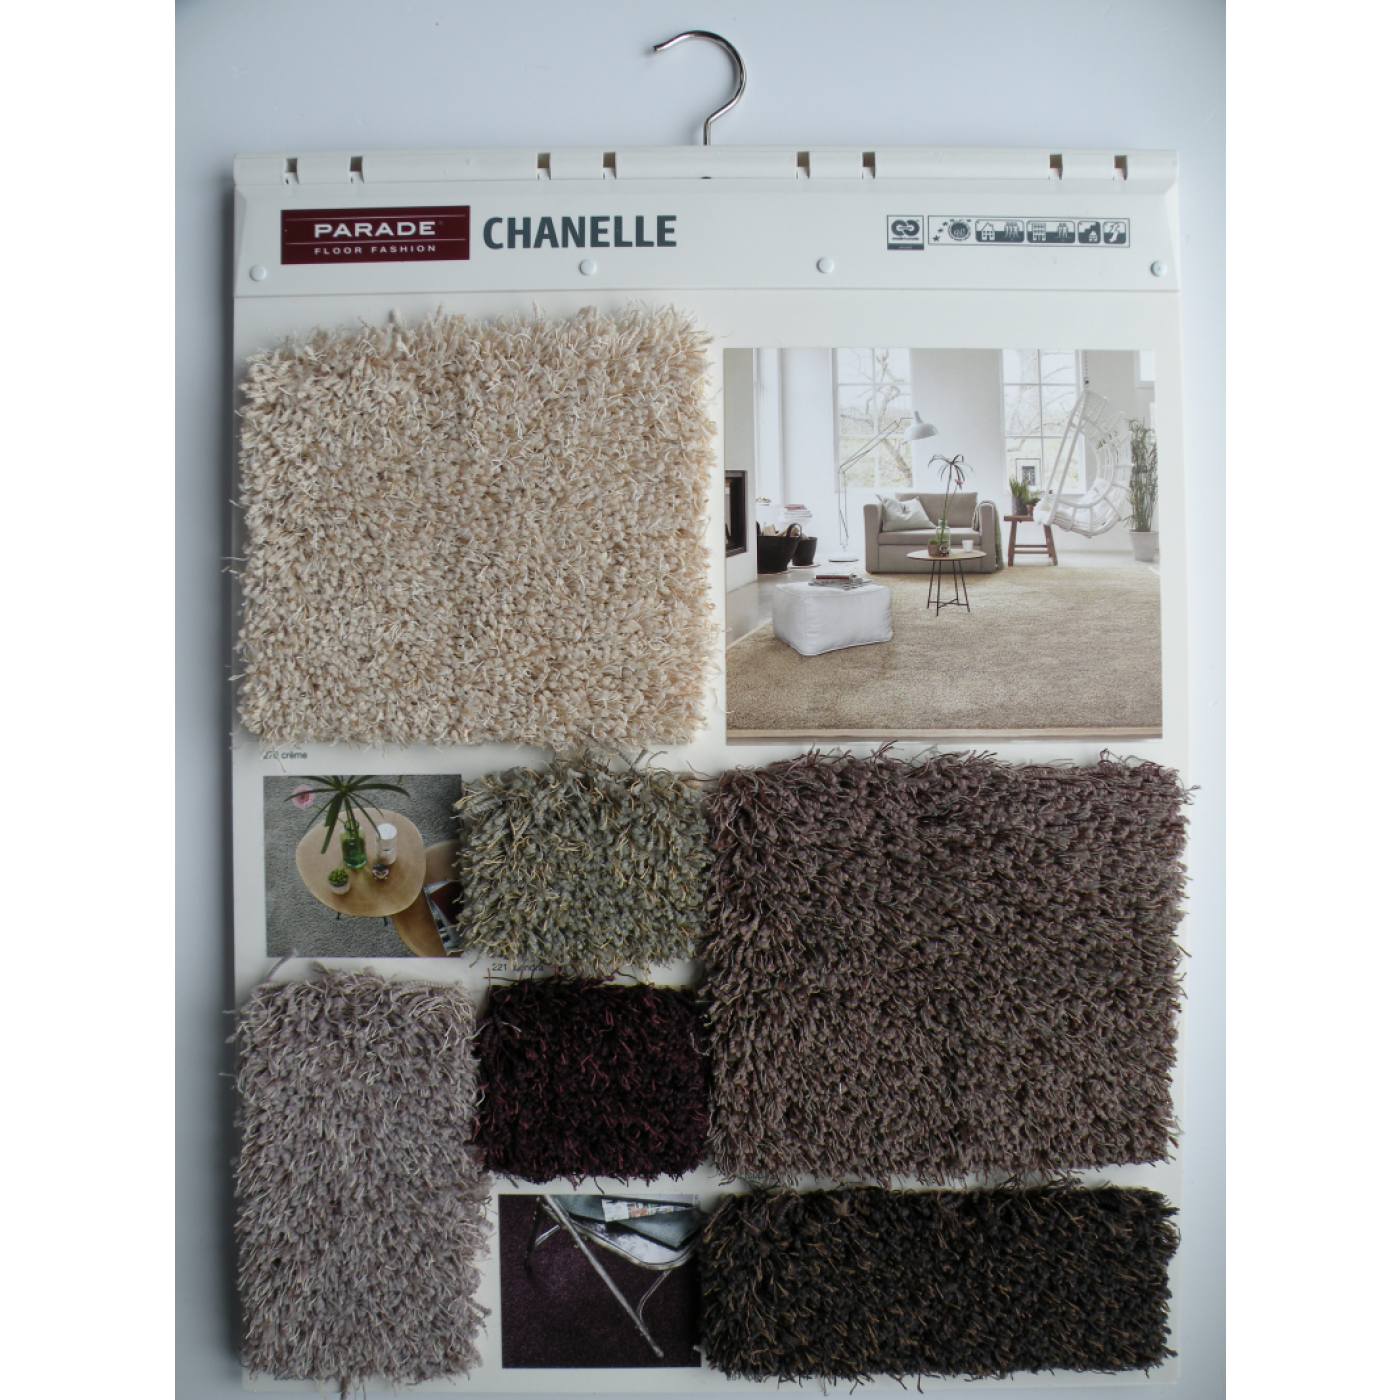 Parade Chanelle 4 meter breed -